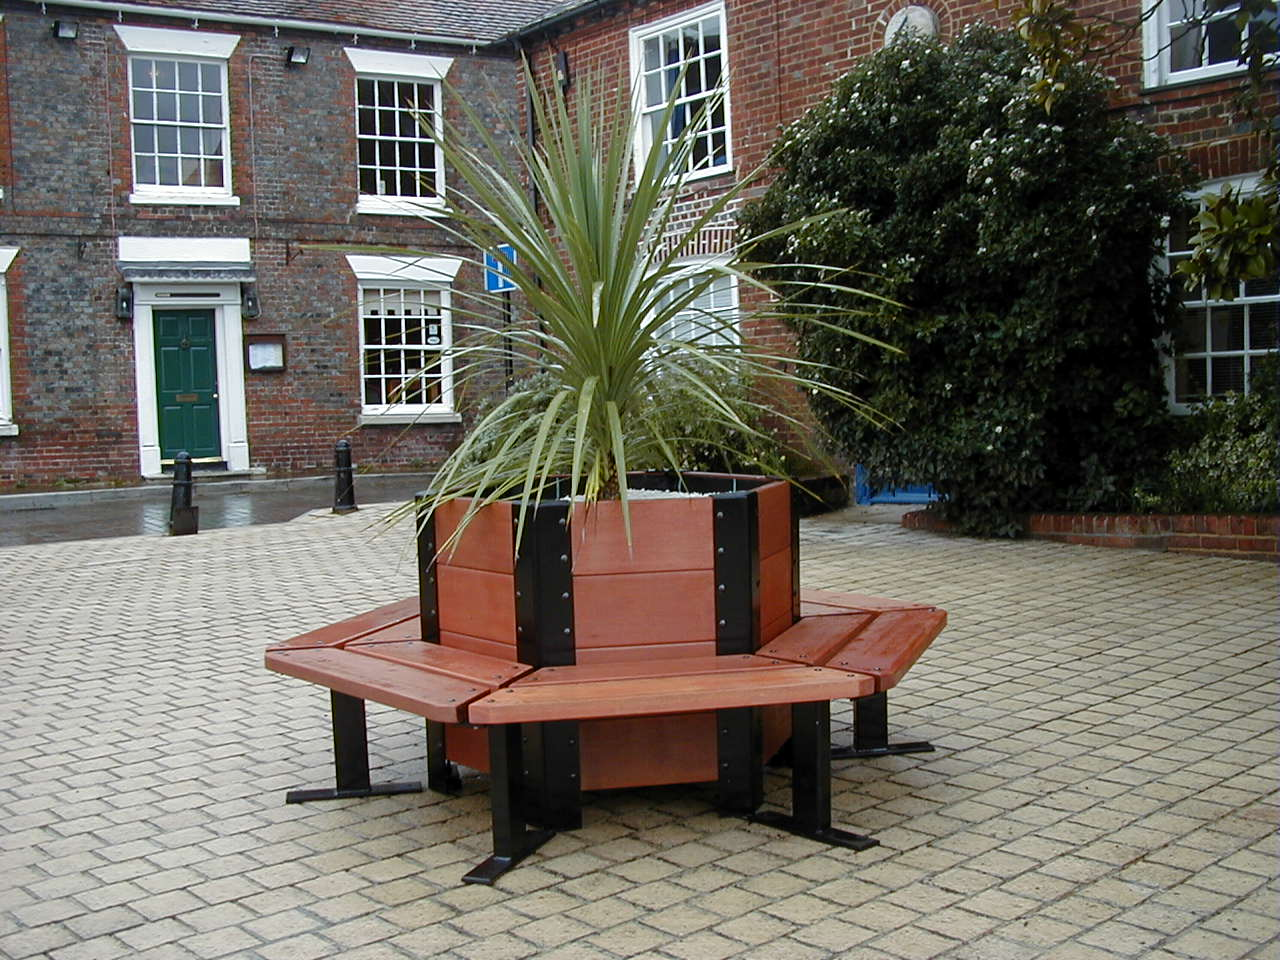 Bespoke Seat with Planter